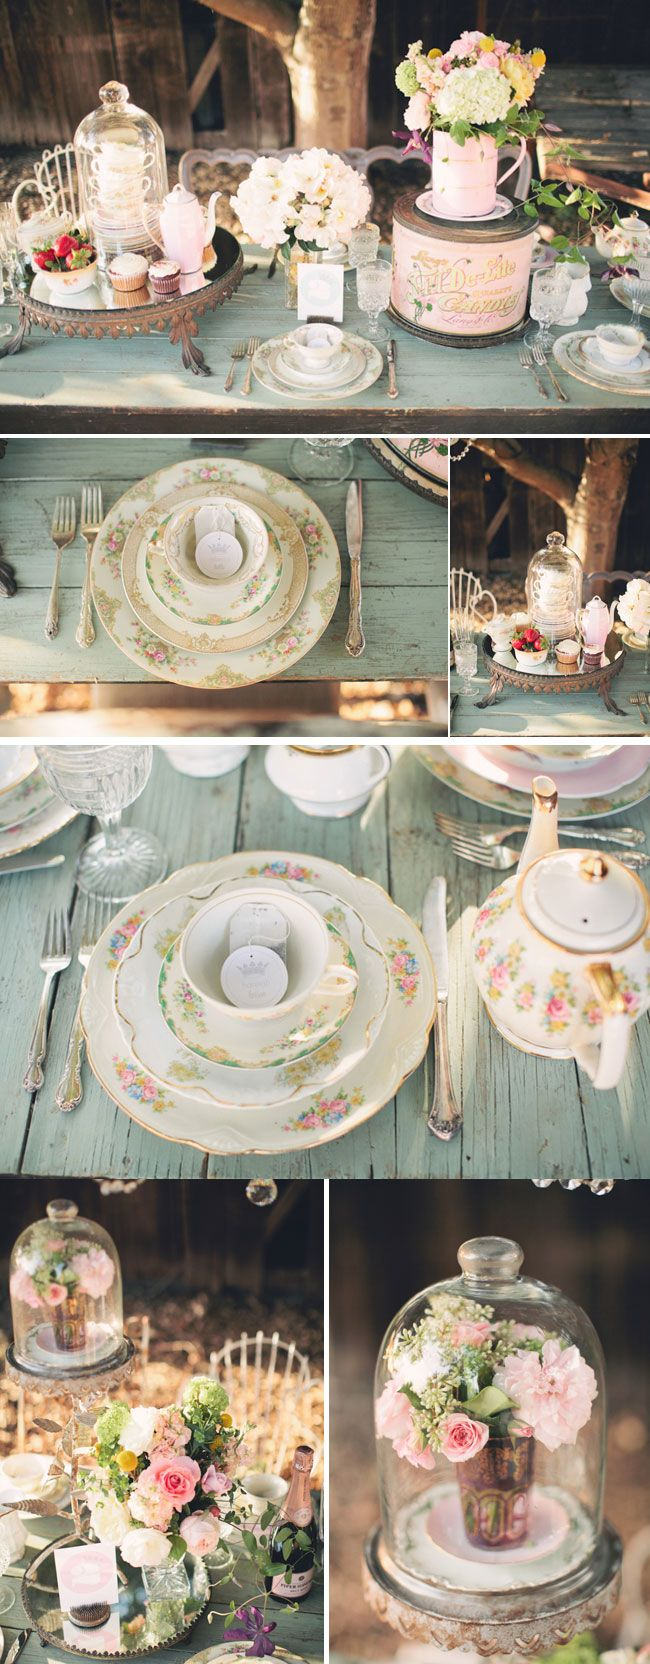 Outdoor Styled Dinner Party. Victorian Theme PartyVictorian Wedding  DecorVintage Fairytale WeddingHigh Tea ...